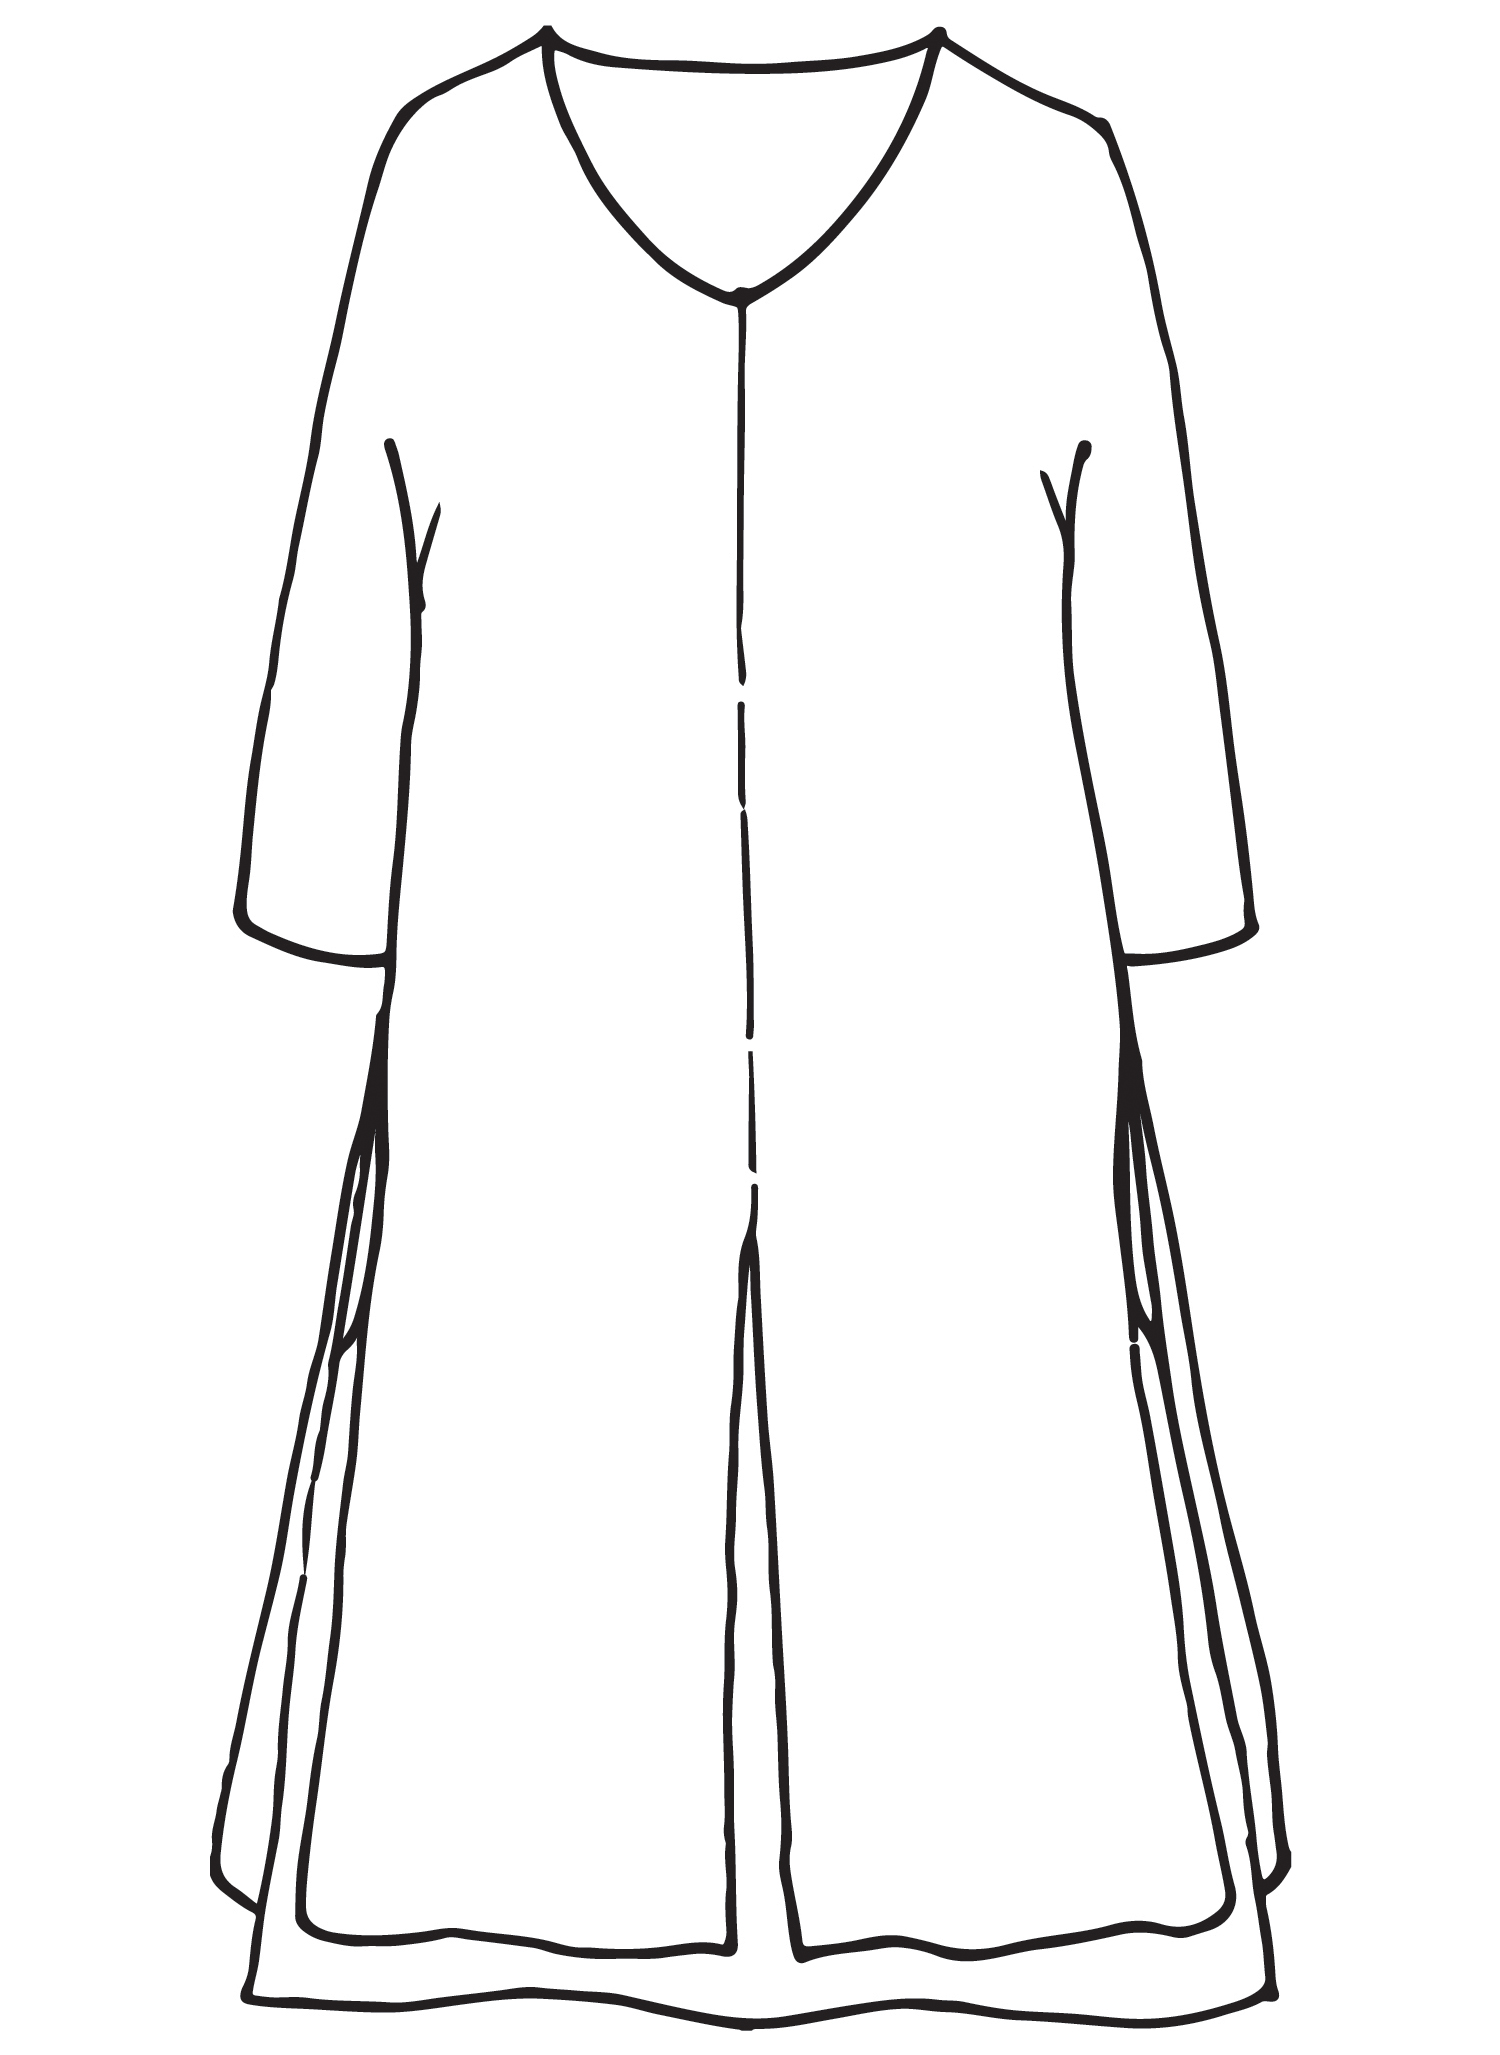 Encore Dress sketch image